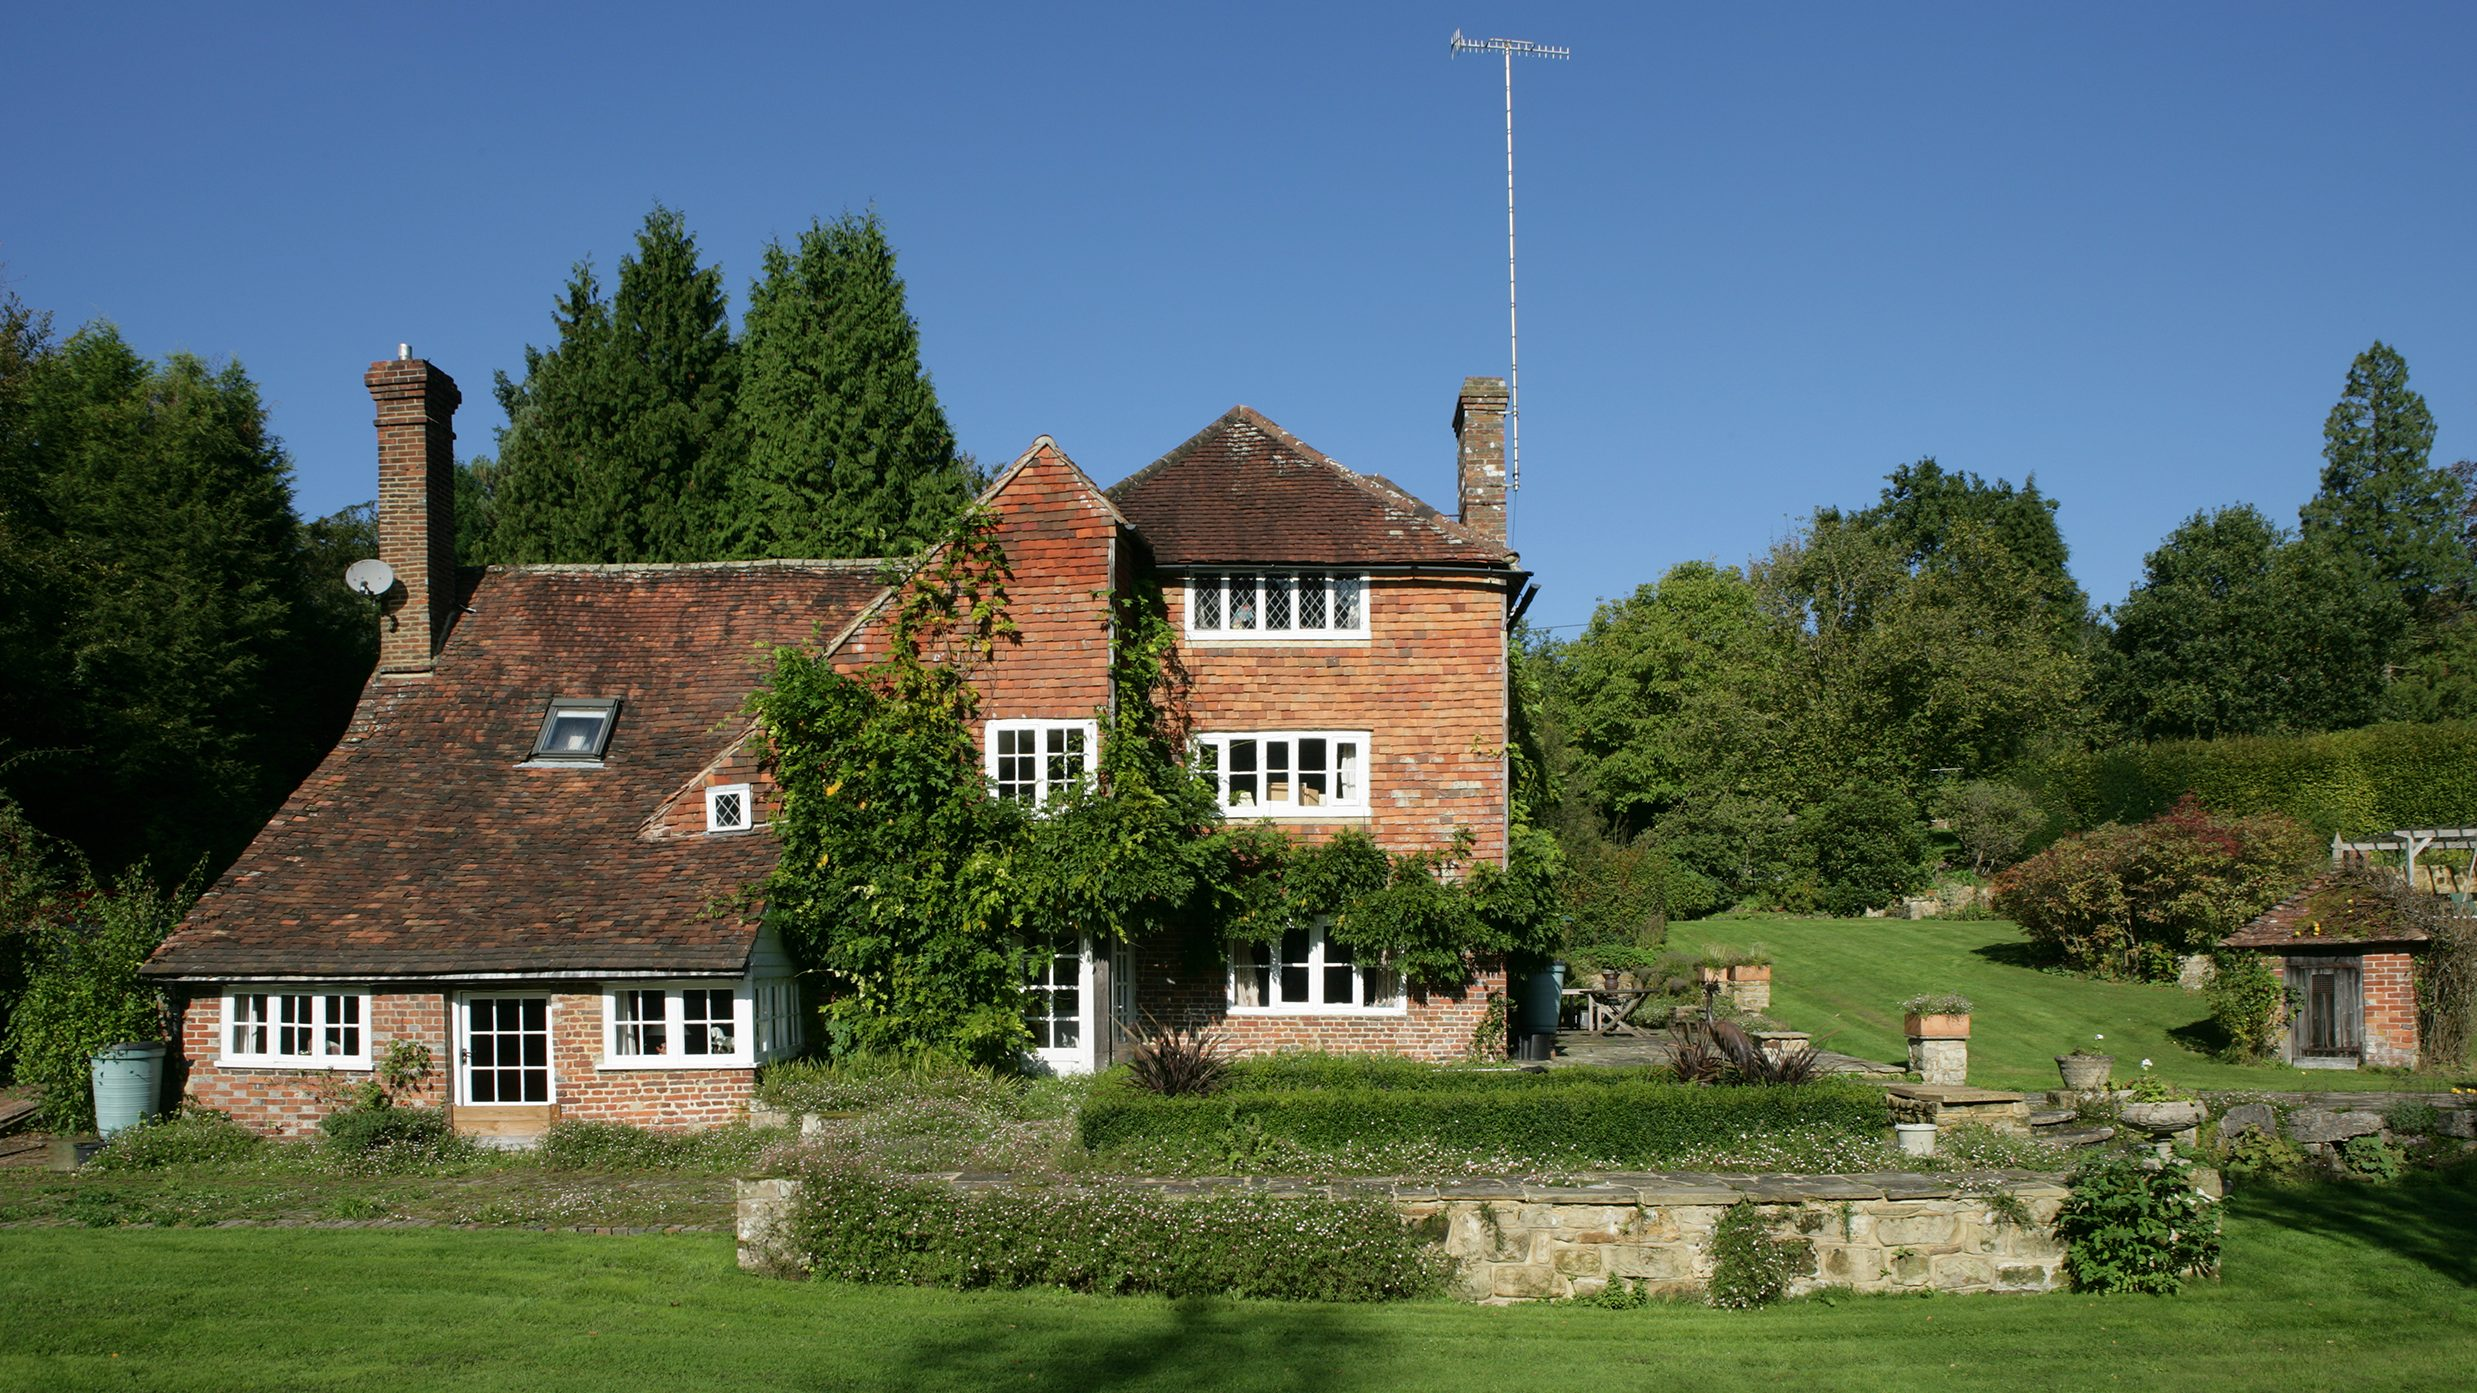 Home Of Winnie The Pooh Creator A A Milne For Sale In England